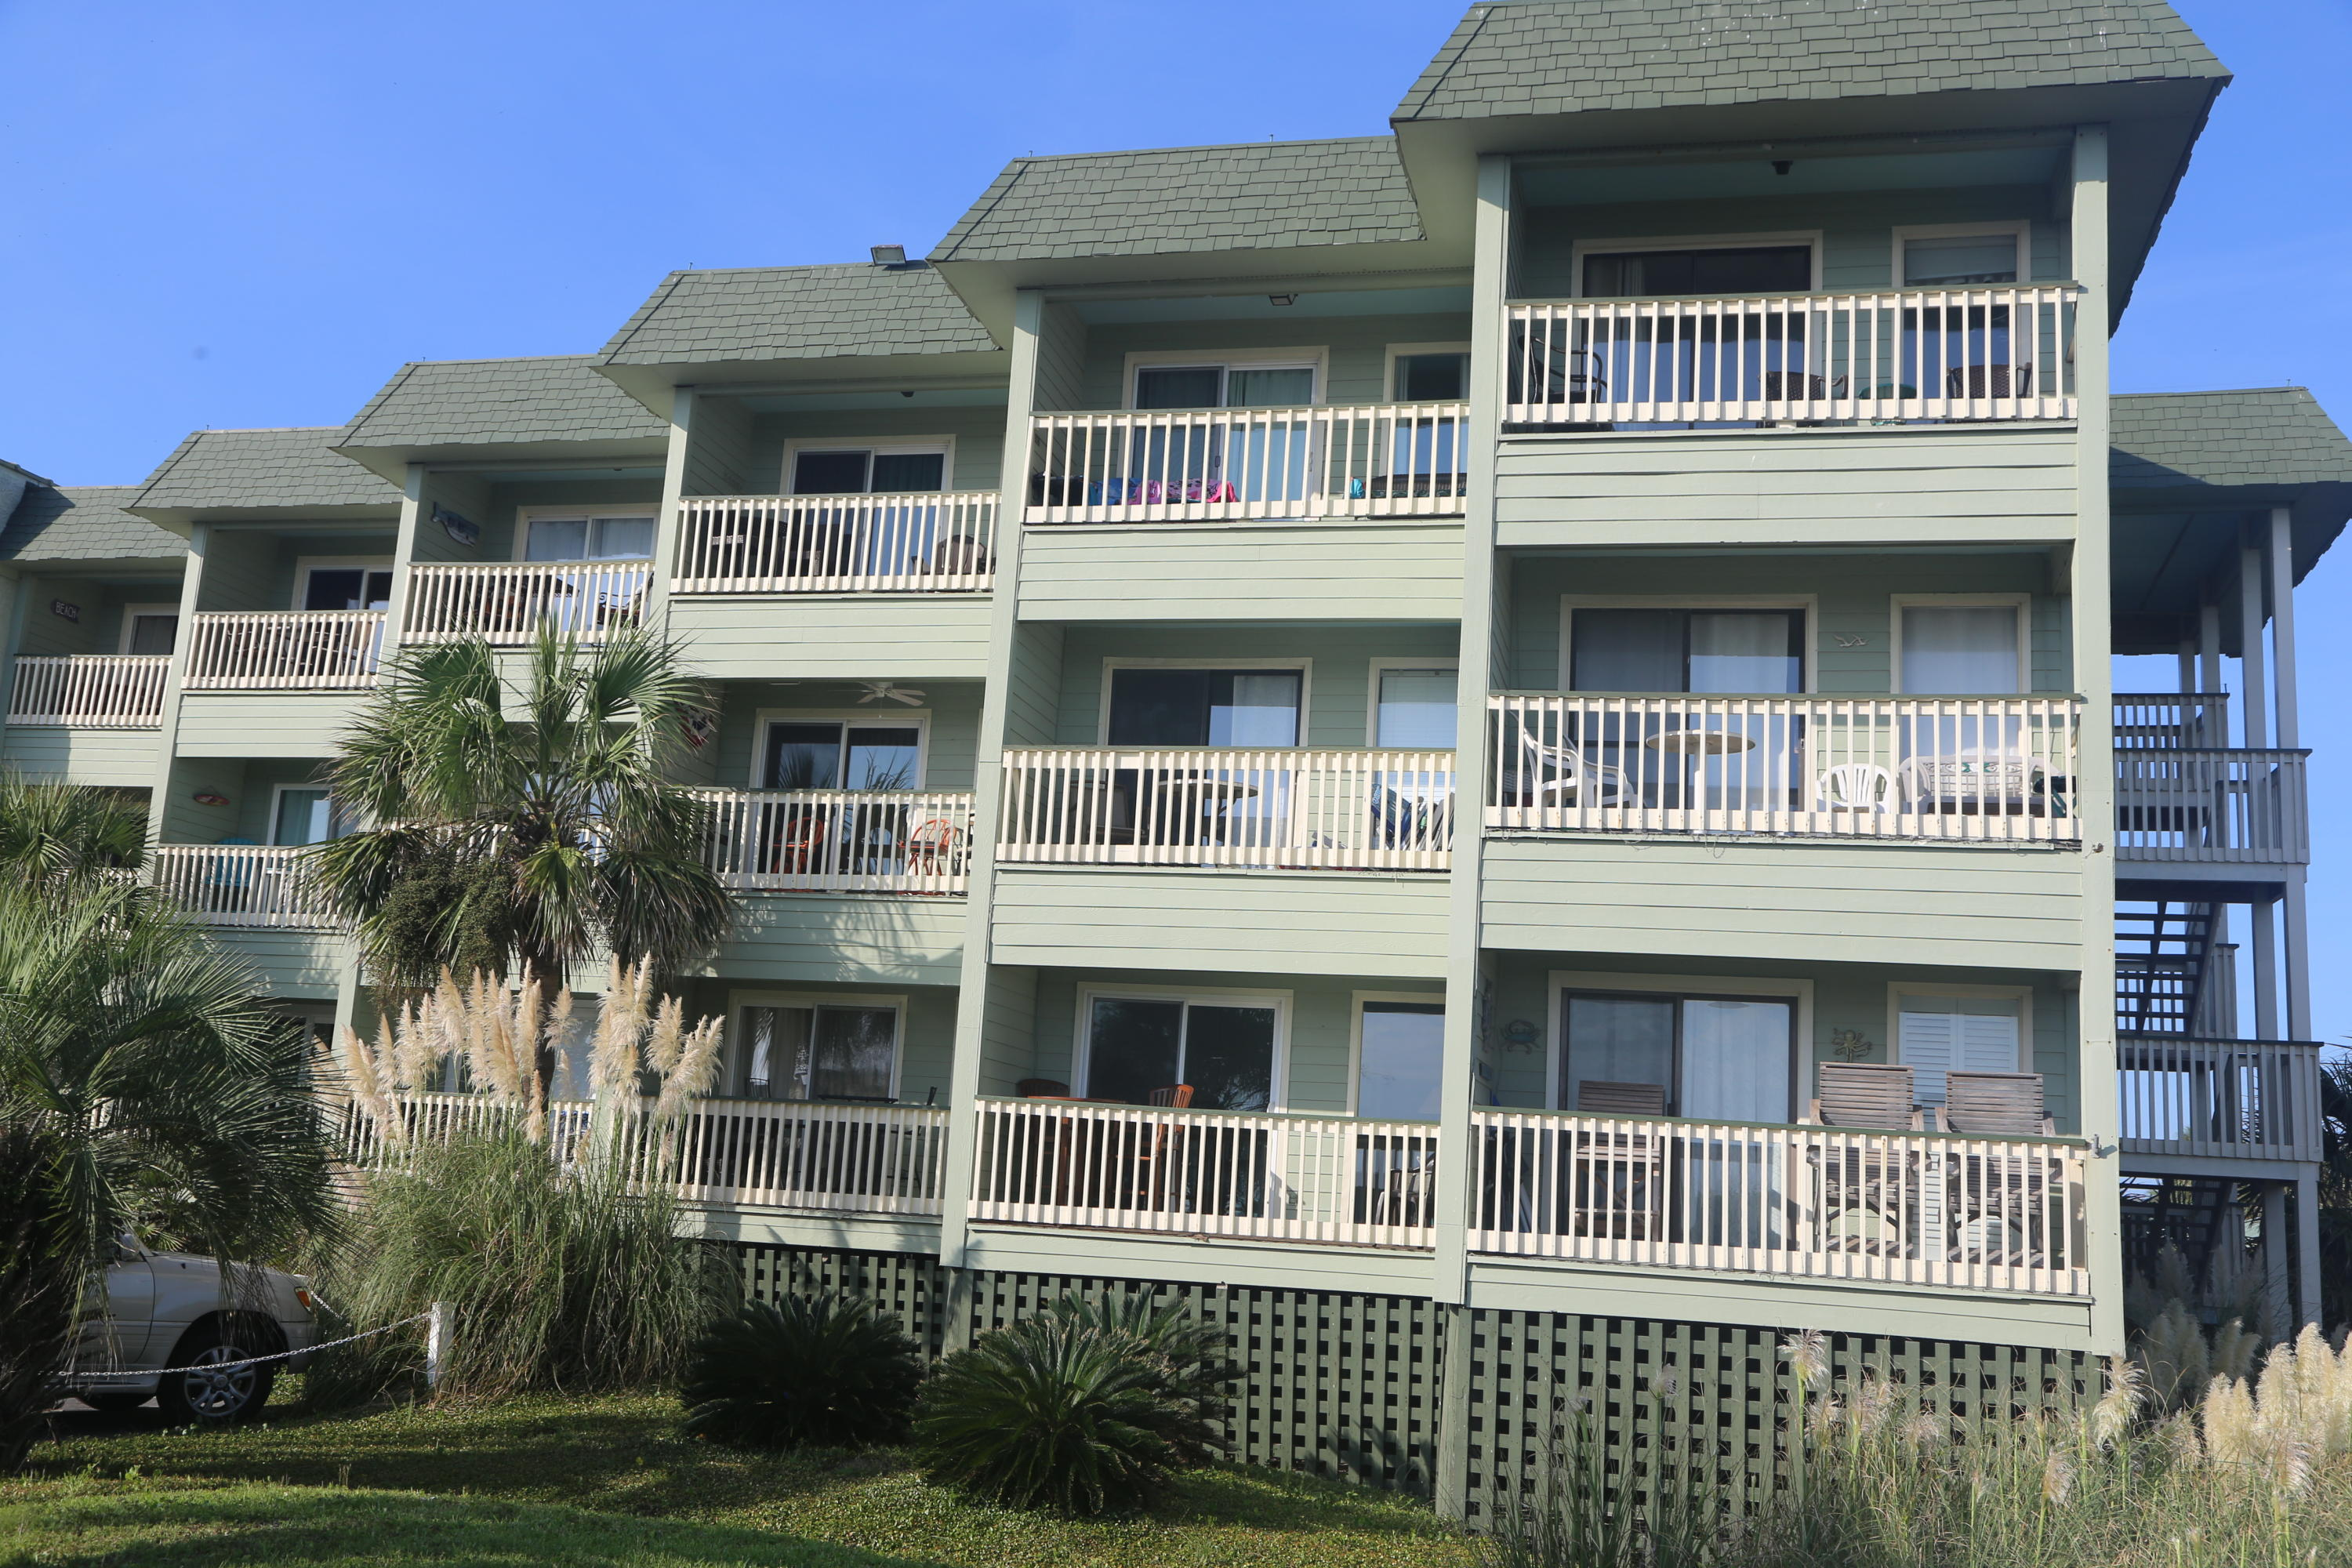 Sea Cabin On The Ocean Homes For Sale - 1300 Ocean, Isle of Palms, SC - 40